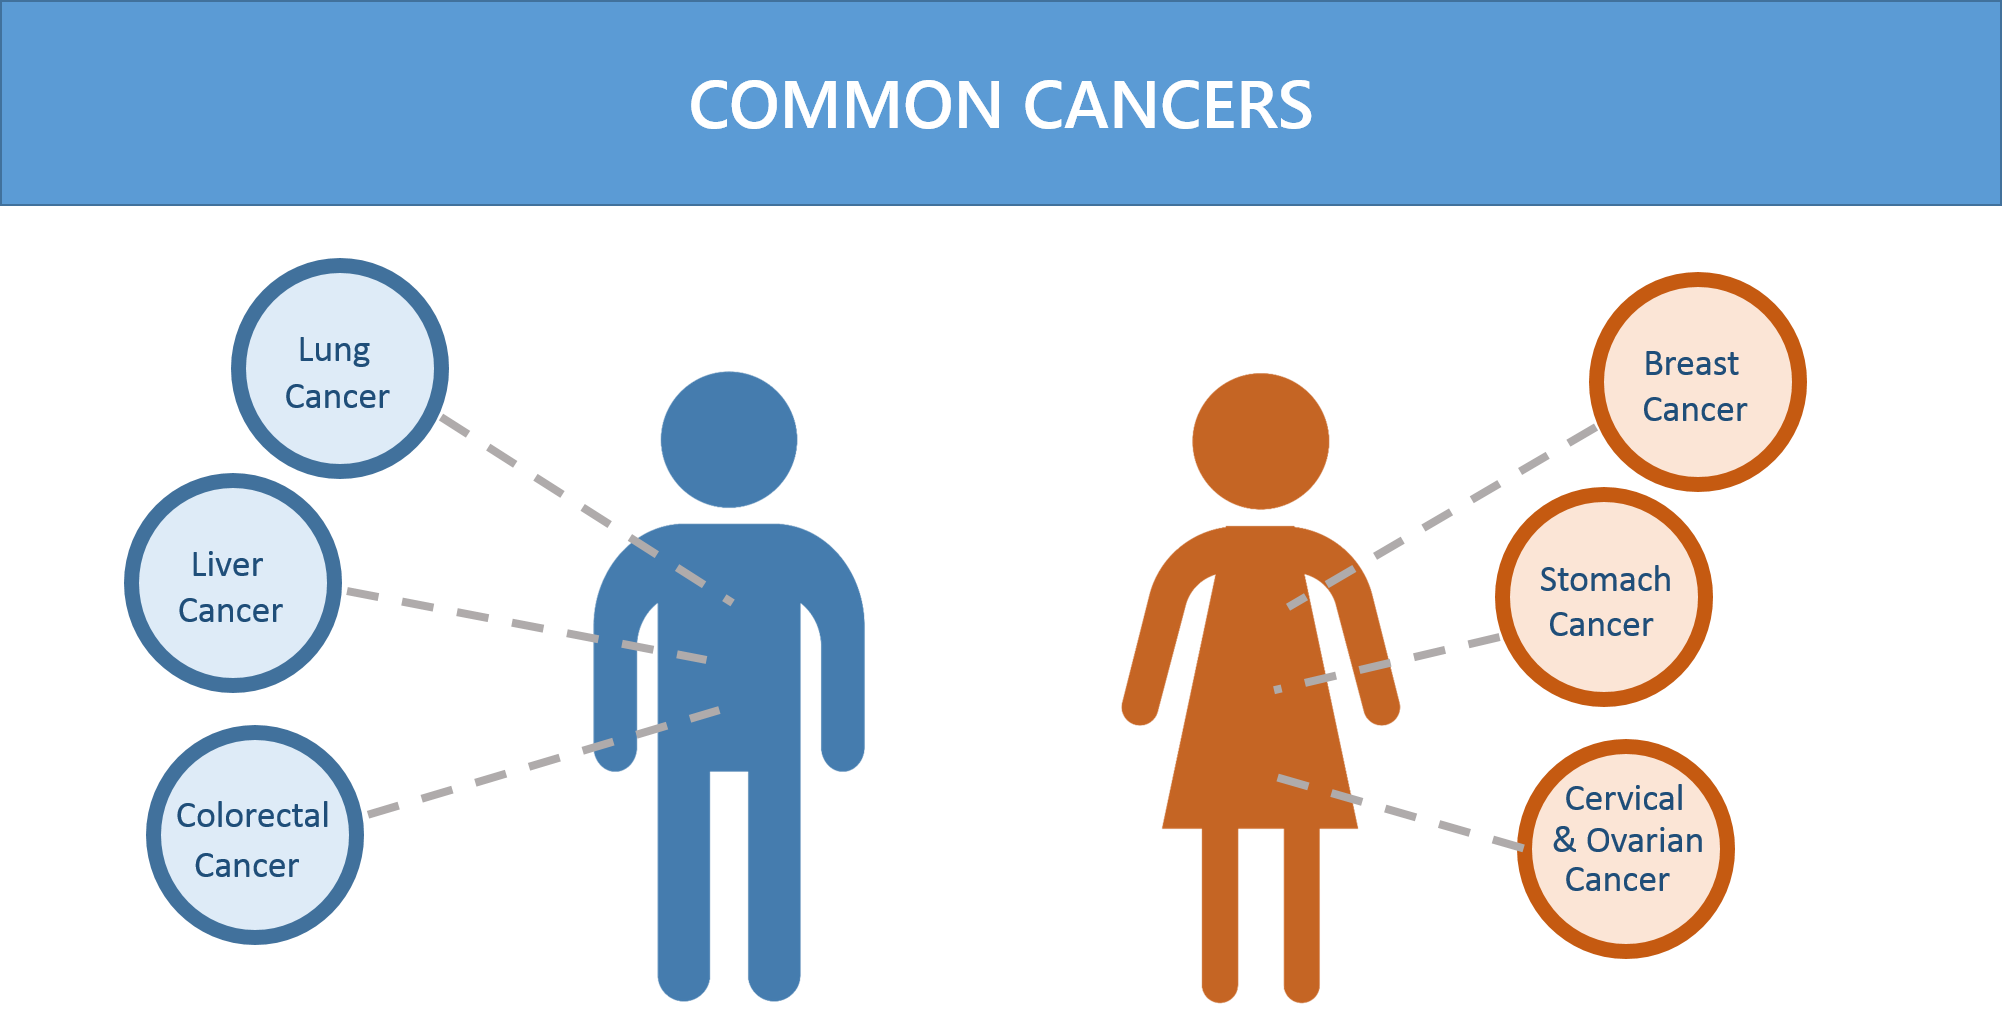 Common cancers infographic